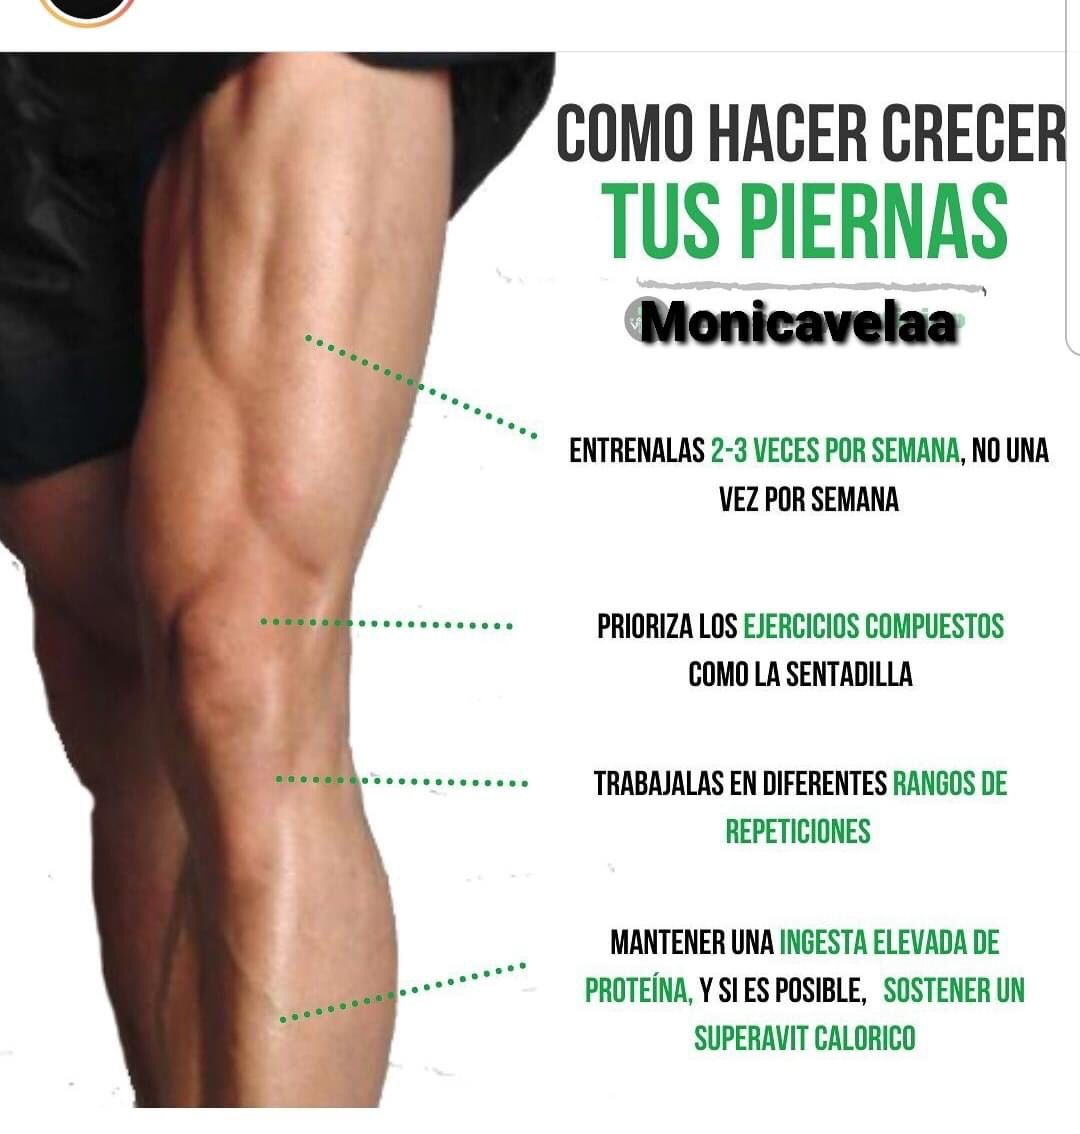 Pin By Oasis On R O U T I N E S Workout Routine Legs Workout Excersise